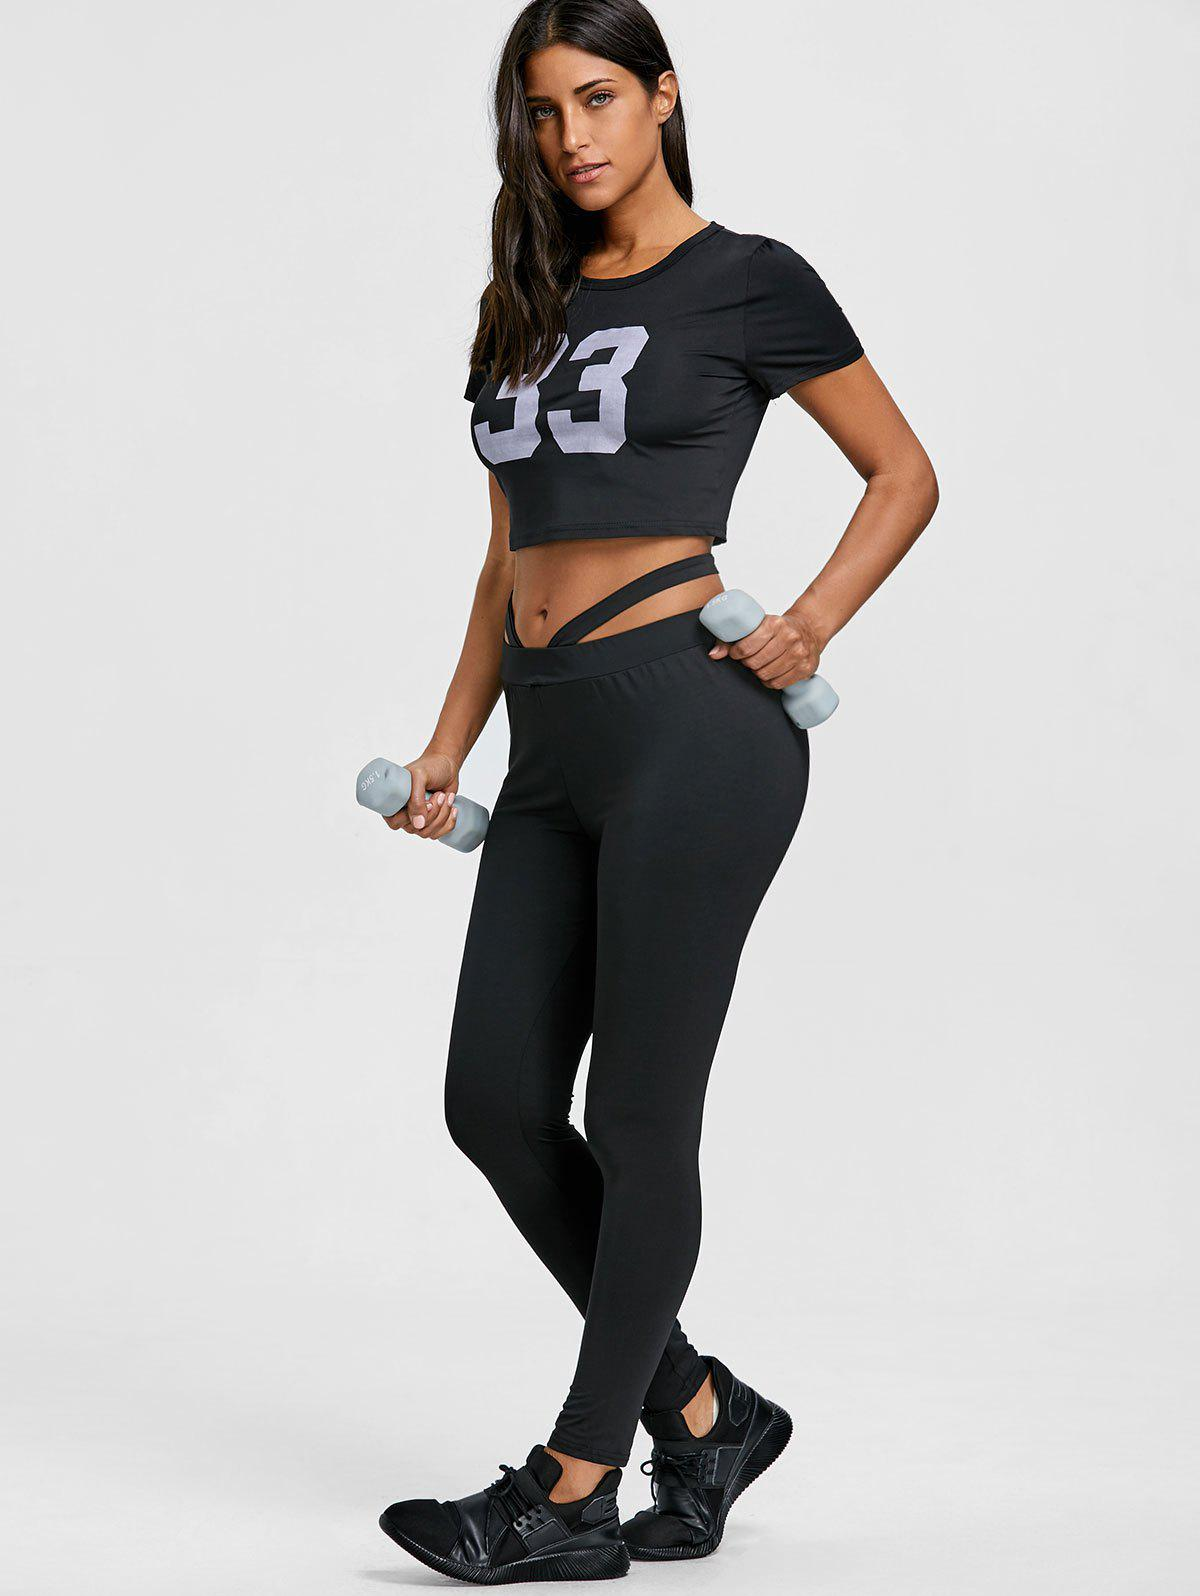 Cropped Letter Print Top and Gym Leggings Set - BLACK M